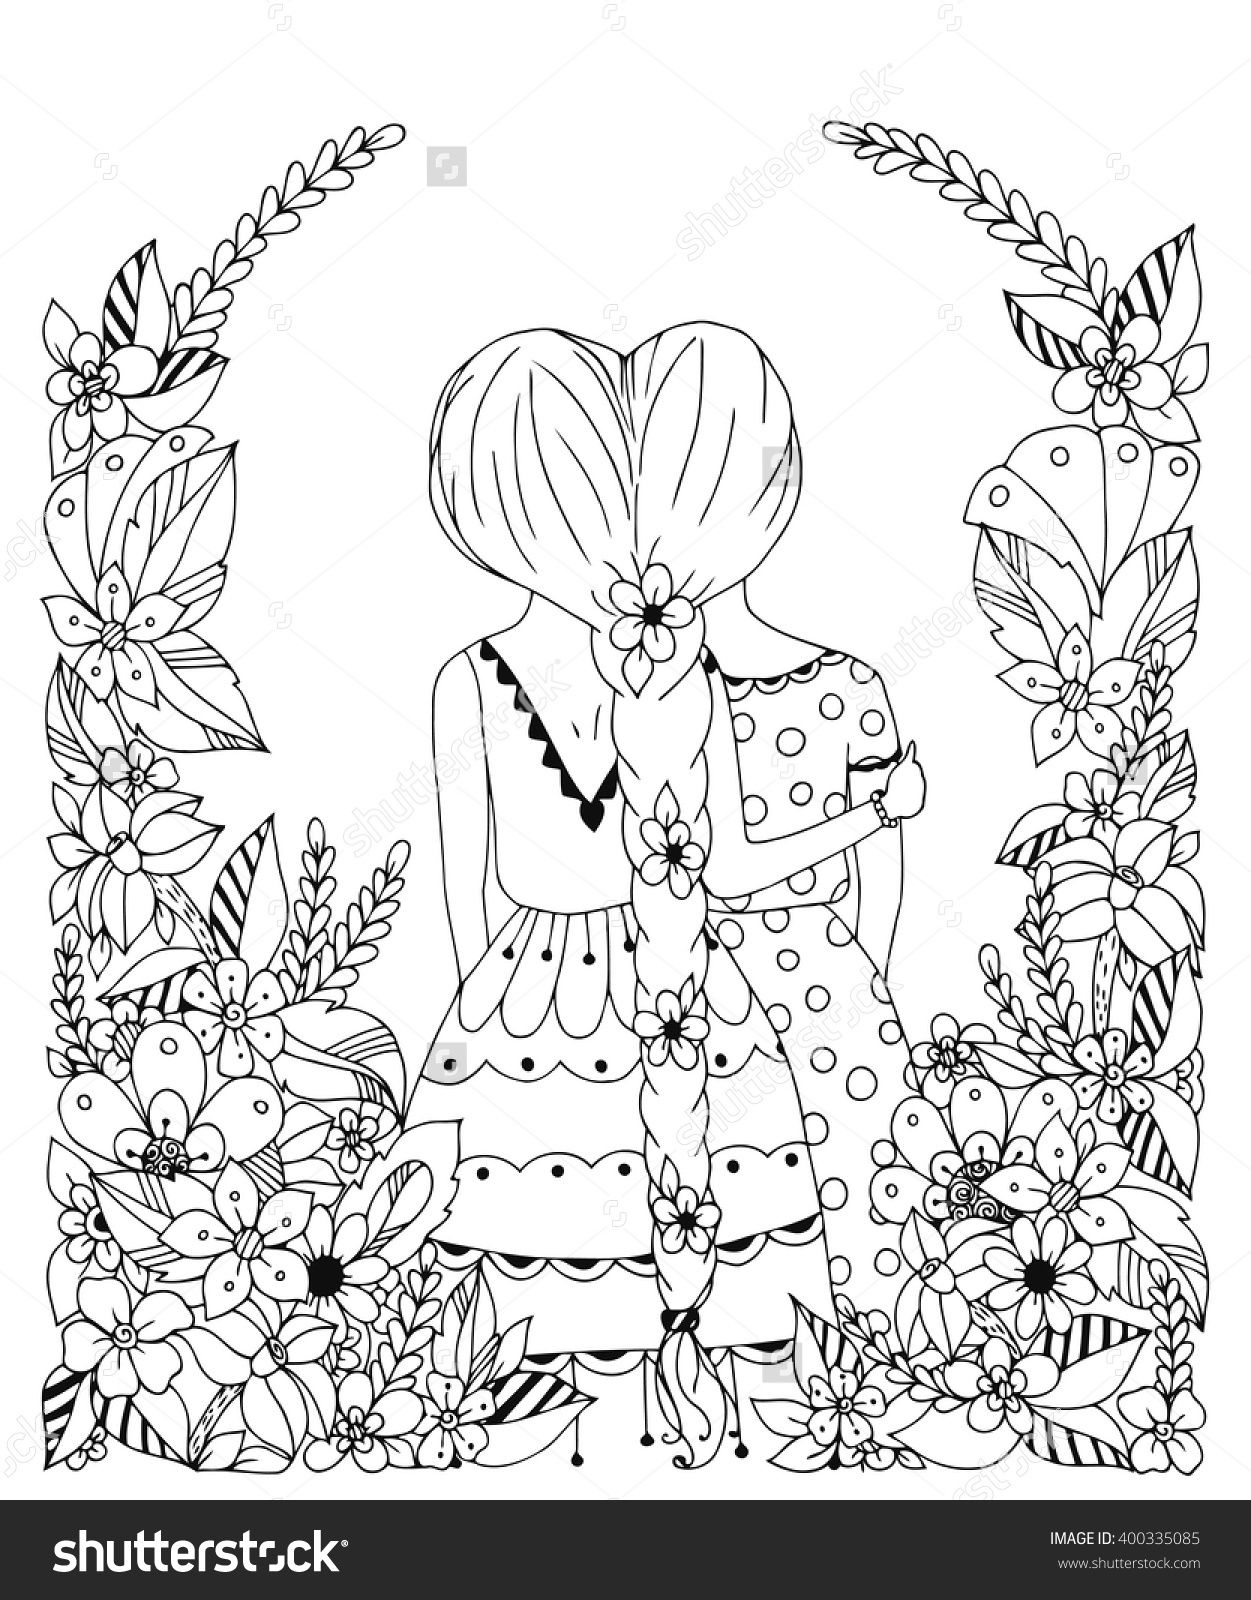 Vector Illustration Zentangl Girl Friend In A Flower Frame Doodle Spit Back Hugs Friendship Coloring Book For Adult Anti Stress Black And White